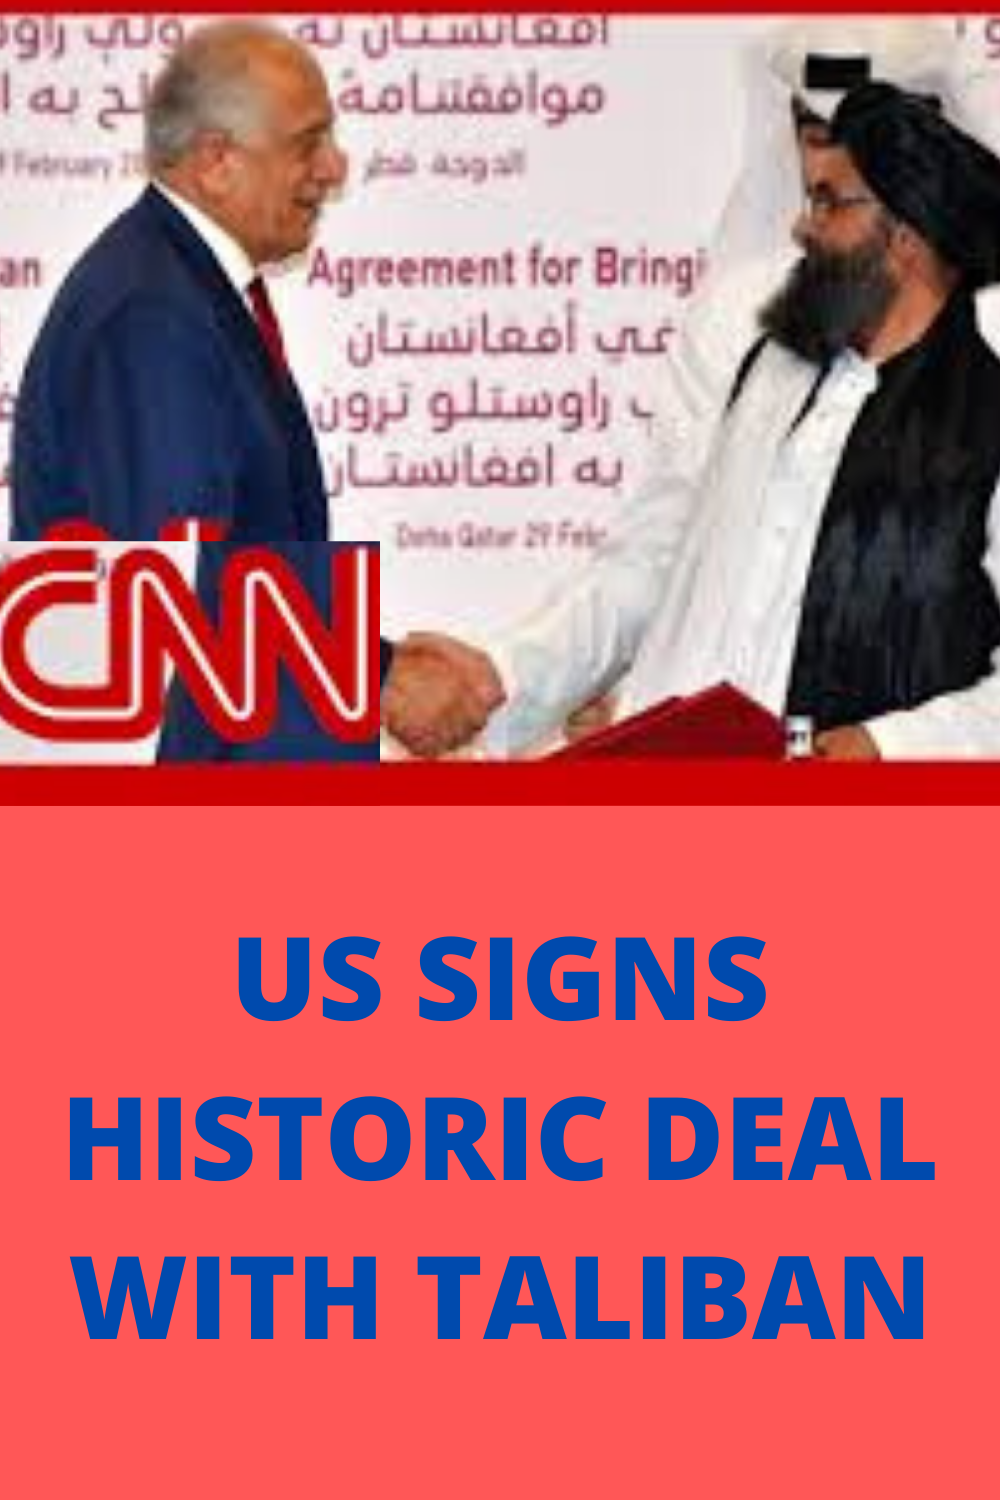 The US and the Taliban signed an agreement which begins